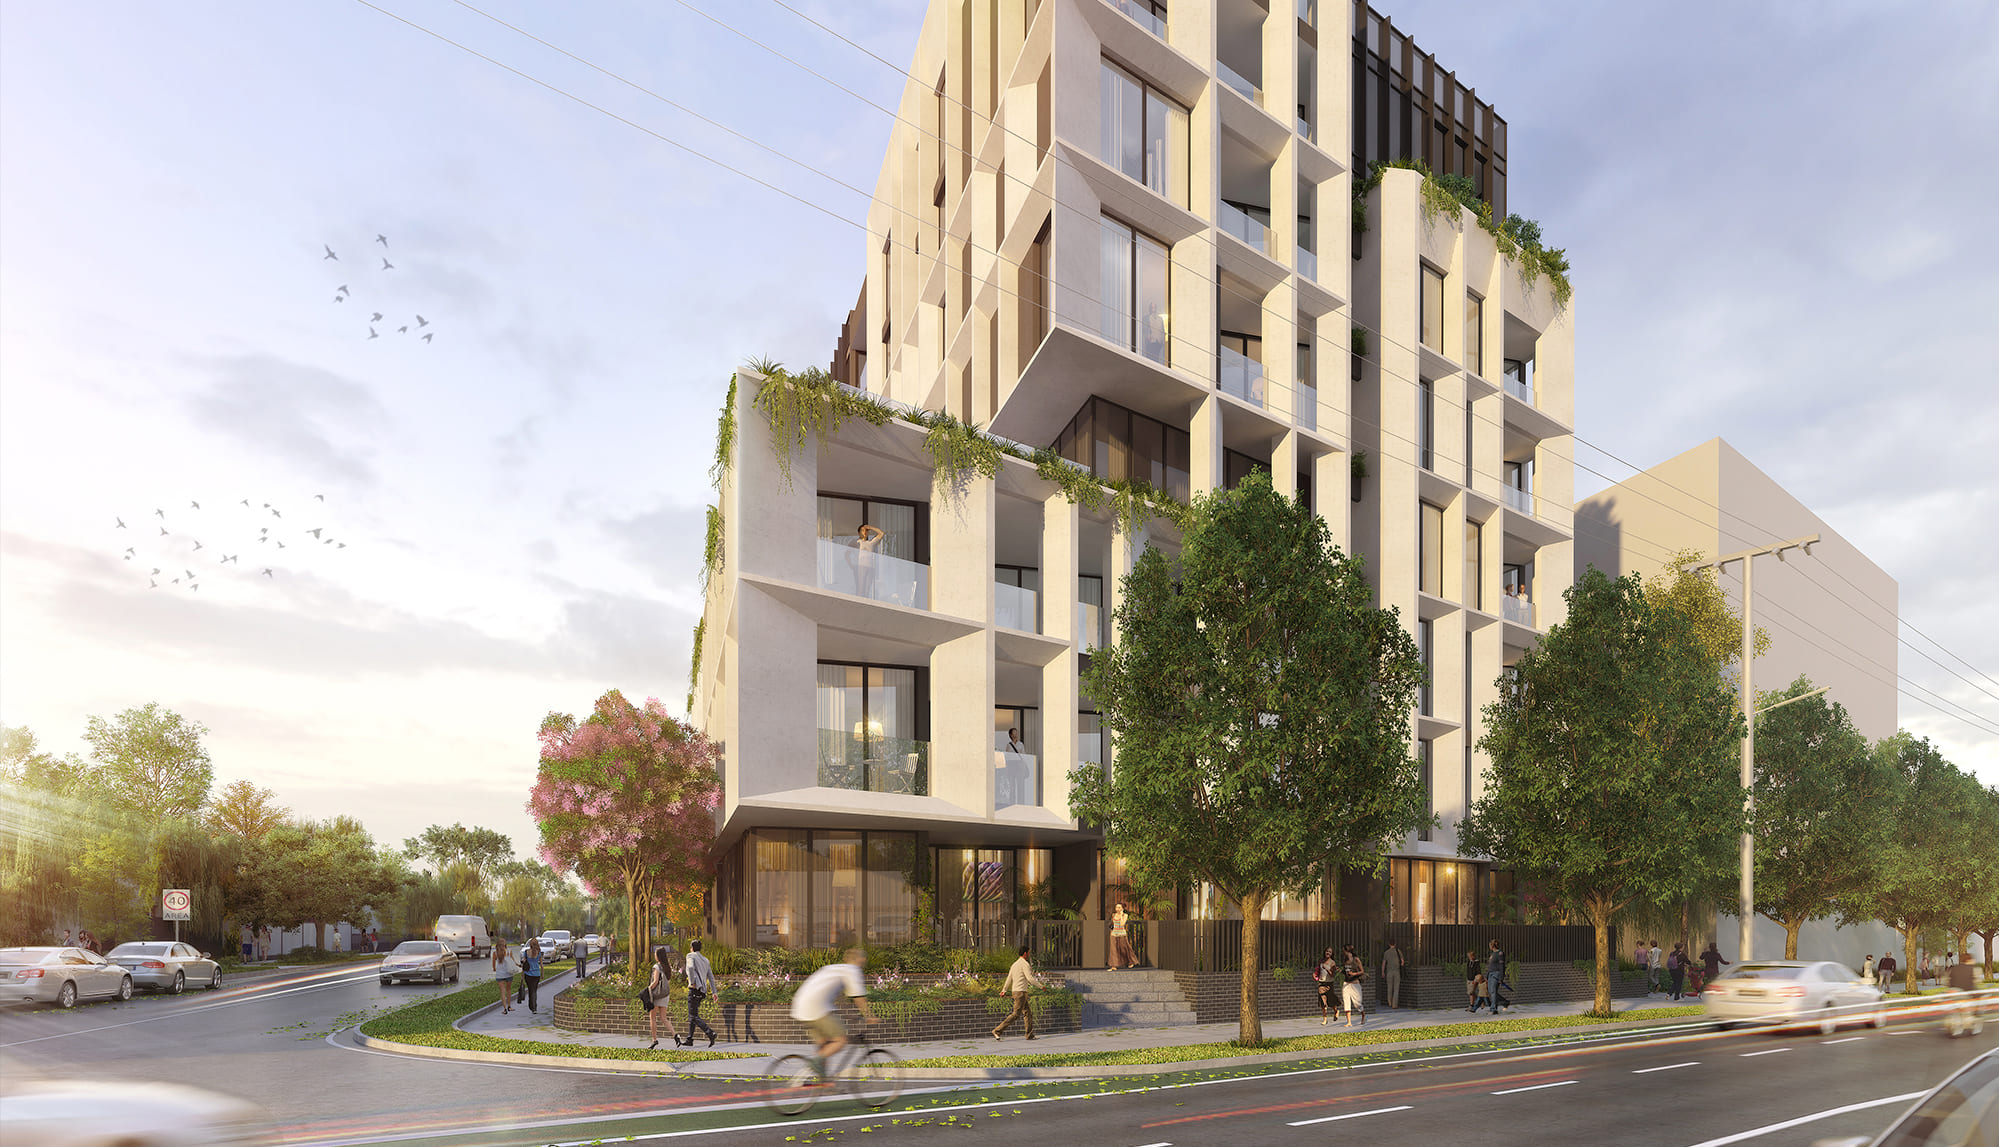 Parkview | YarraBend: Off the Plan Townhouses, Apartments & Property Melbourne